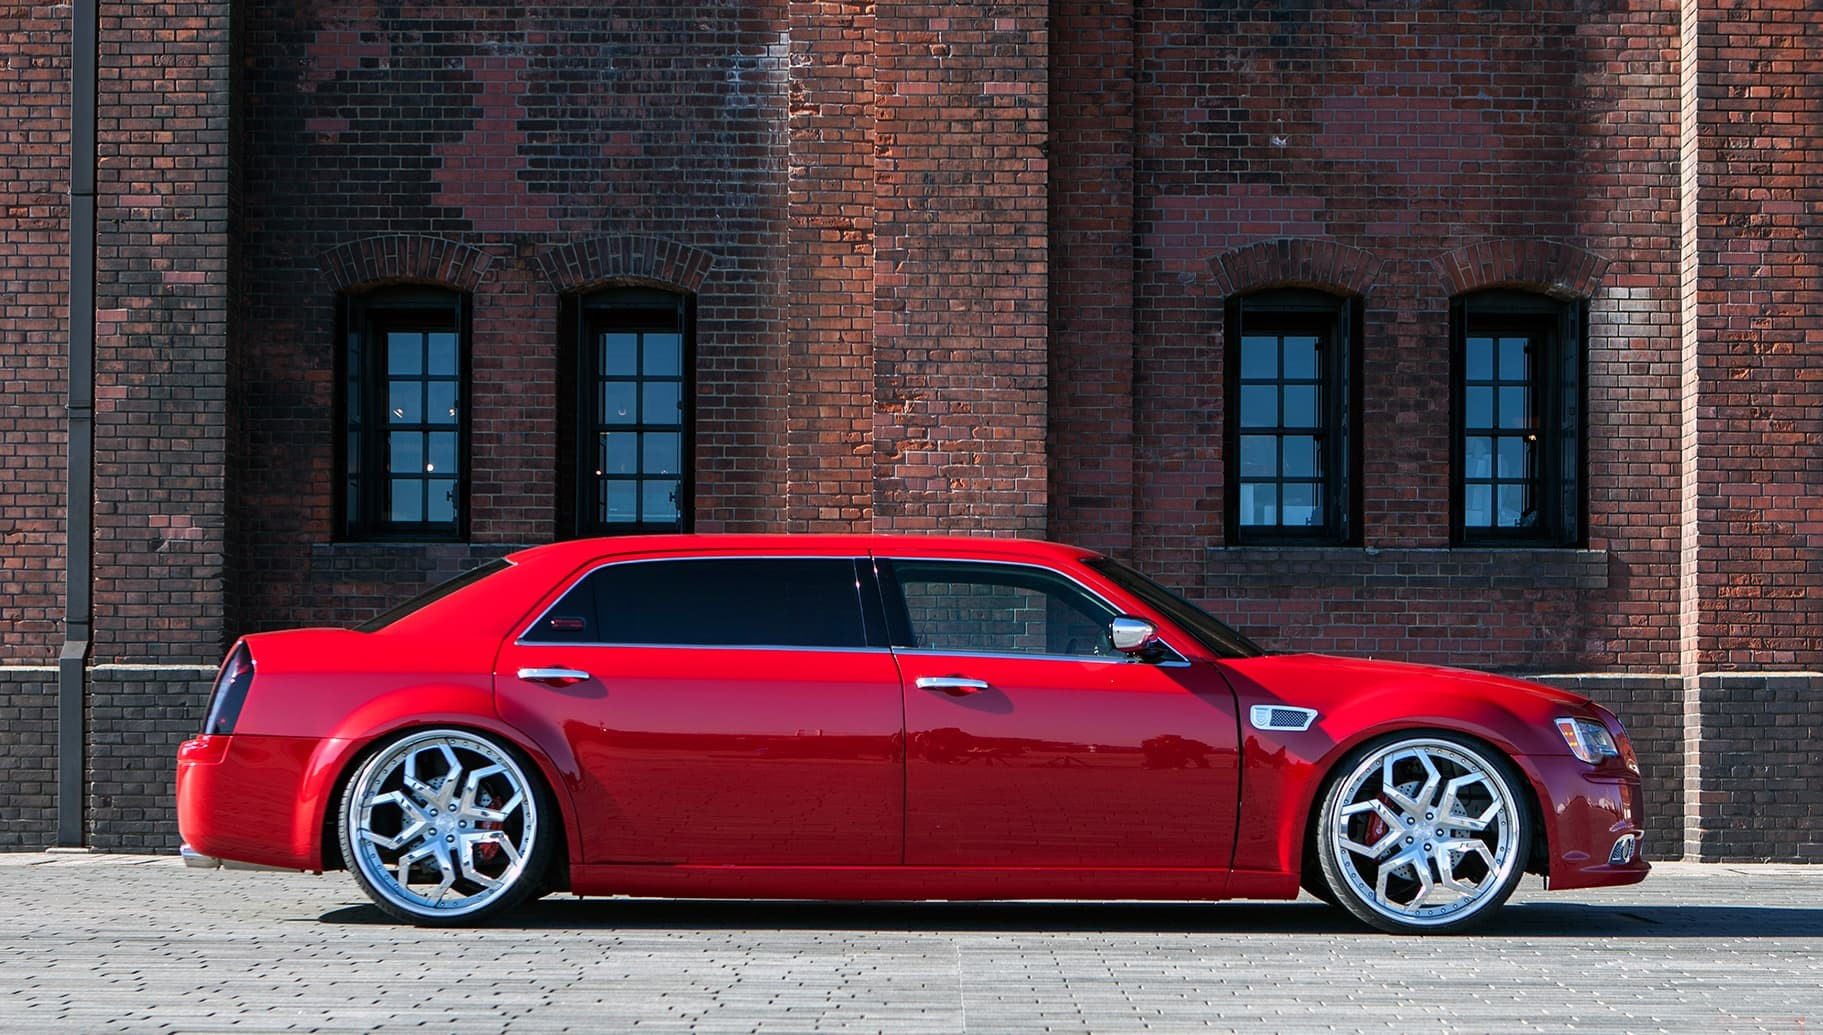 Custom LF-110 on the Chrysler 300C.